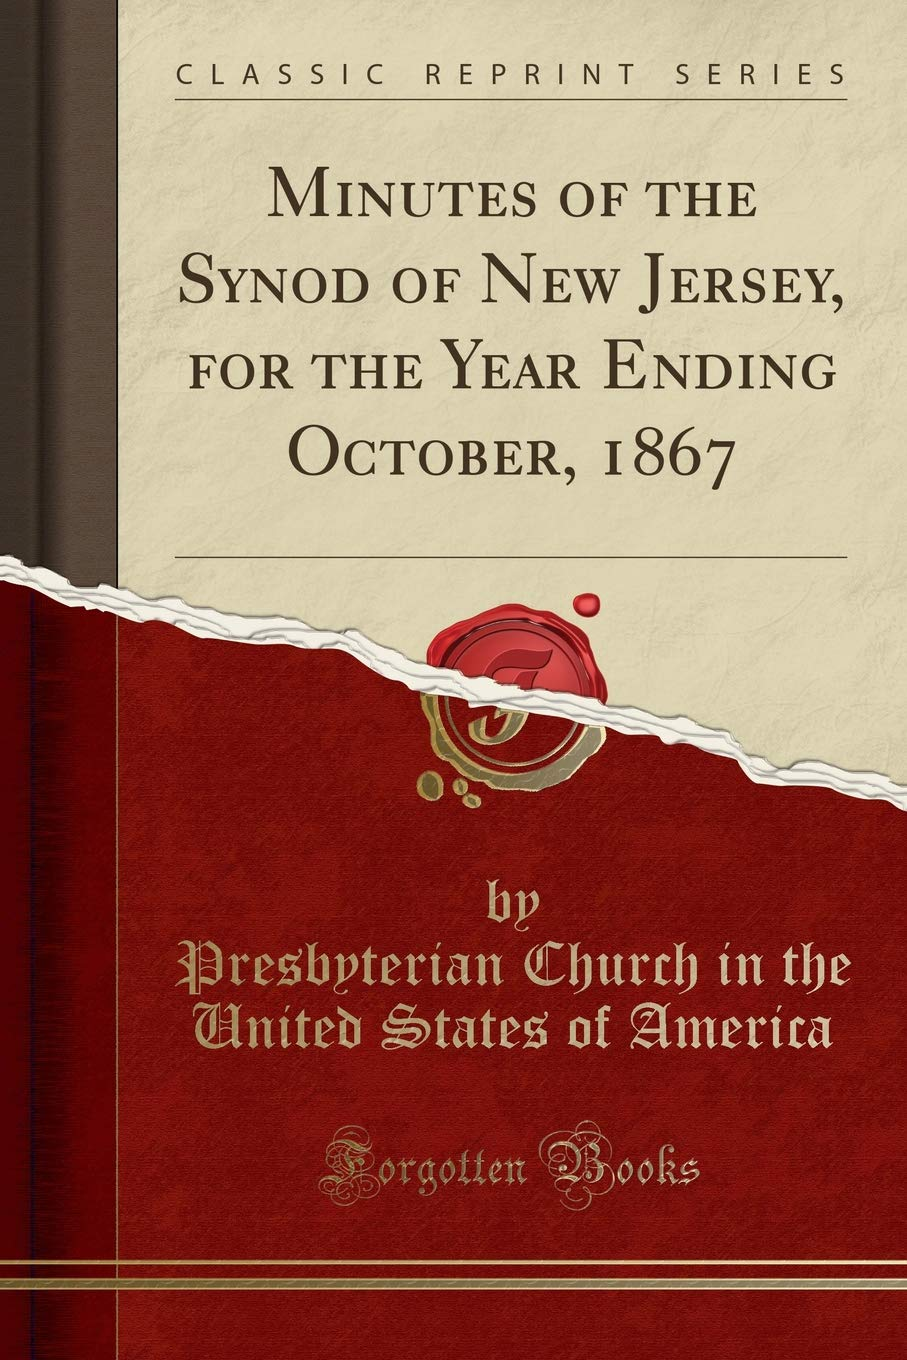 Download Minutes of the Synod of New Jersey, for the Year Ending October, 1867 (Classic Reprint) ebook